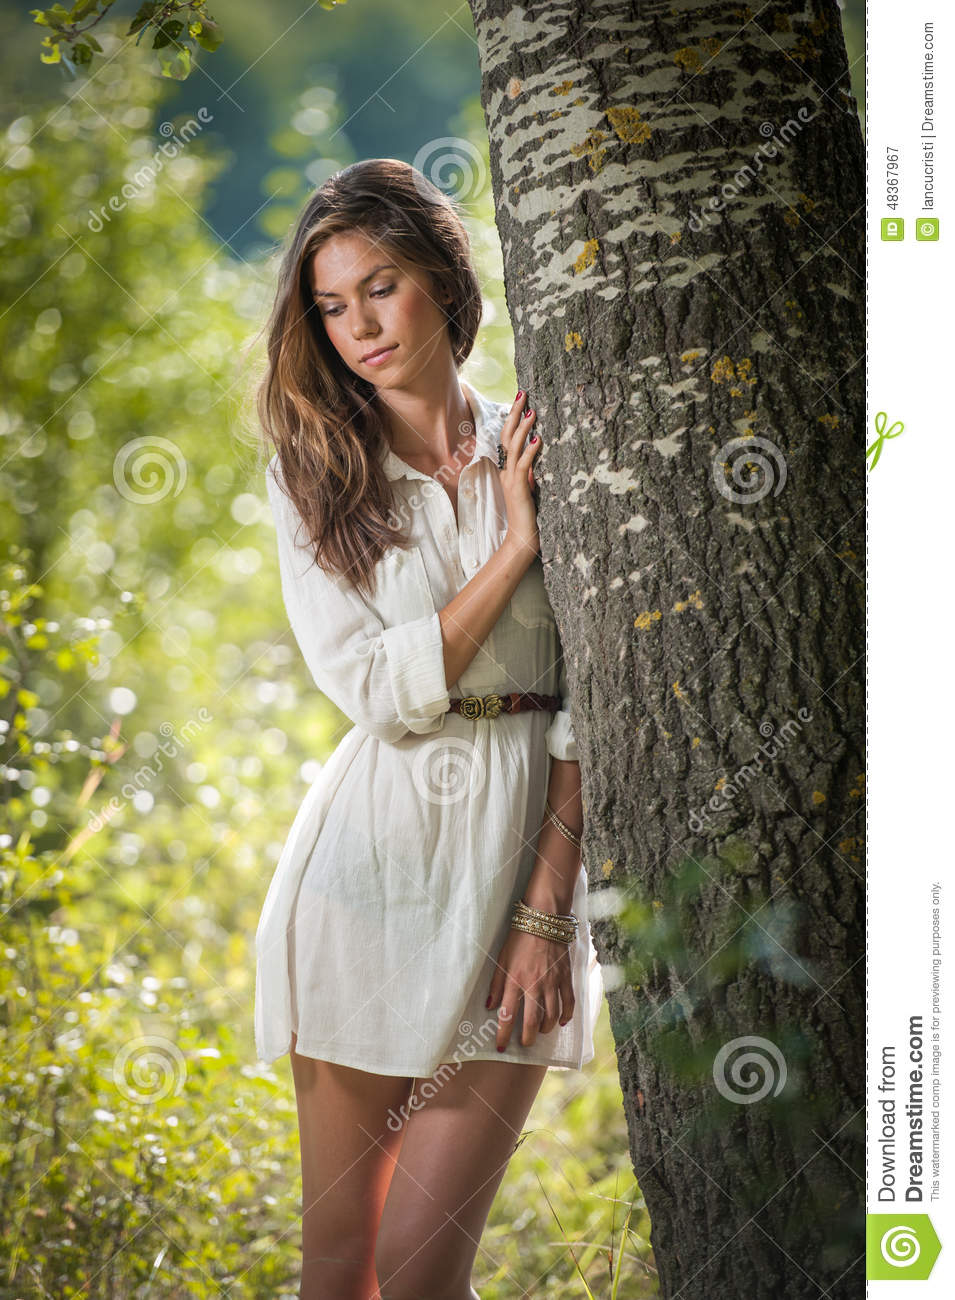 Attractive Young Woman In White Short Dress Posing Near A